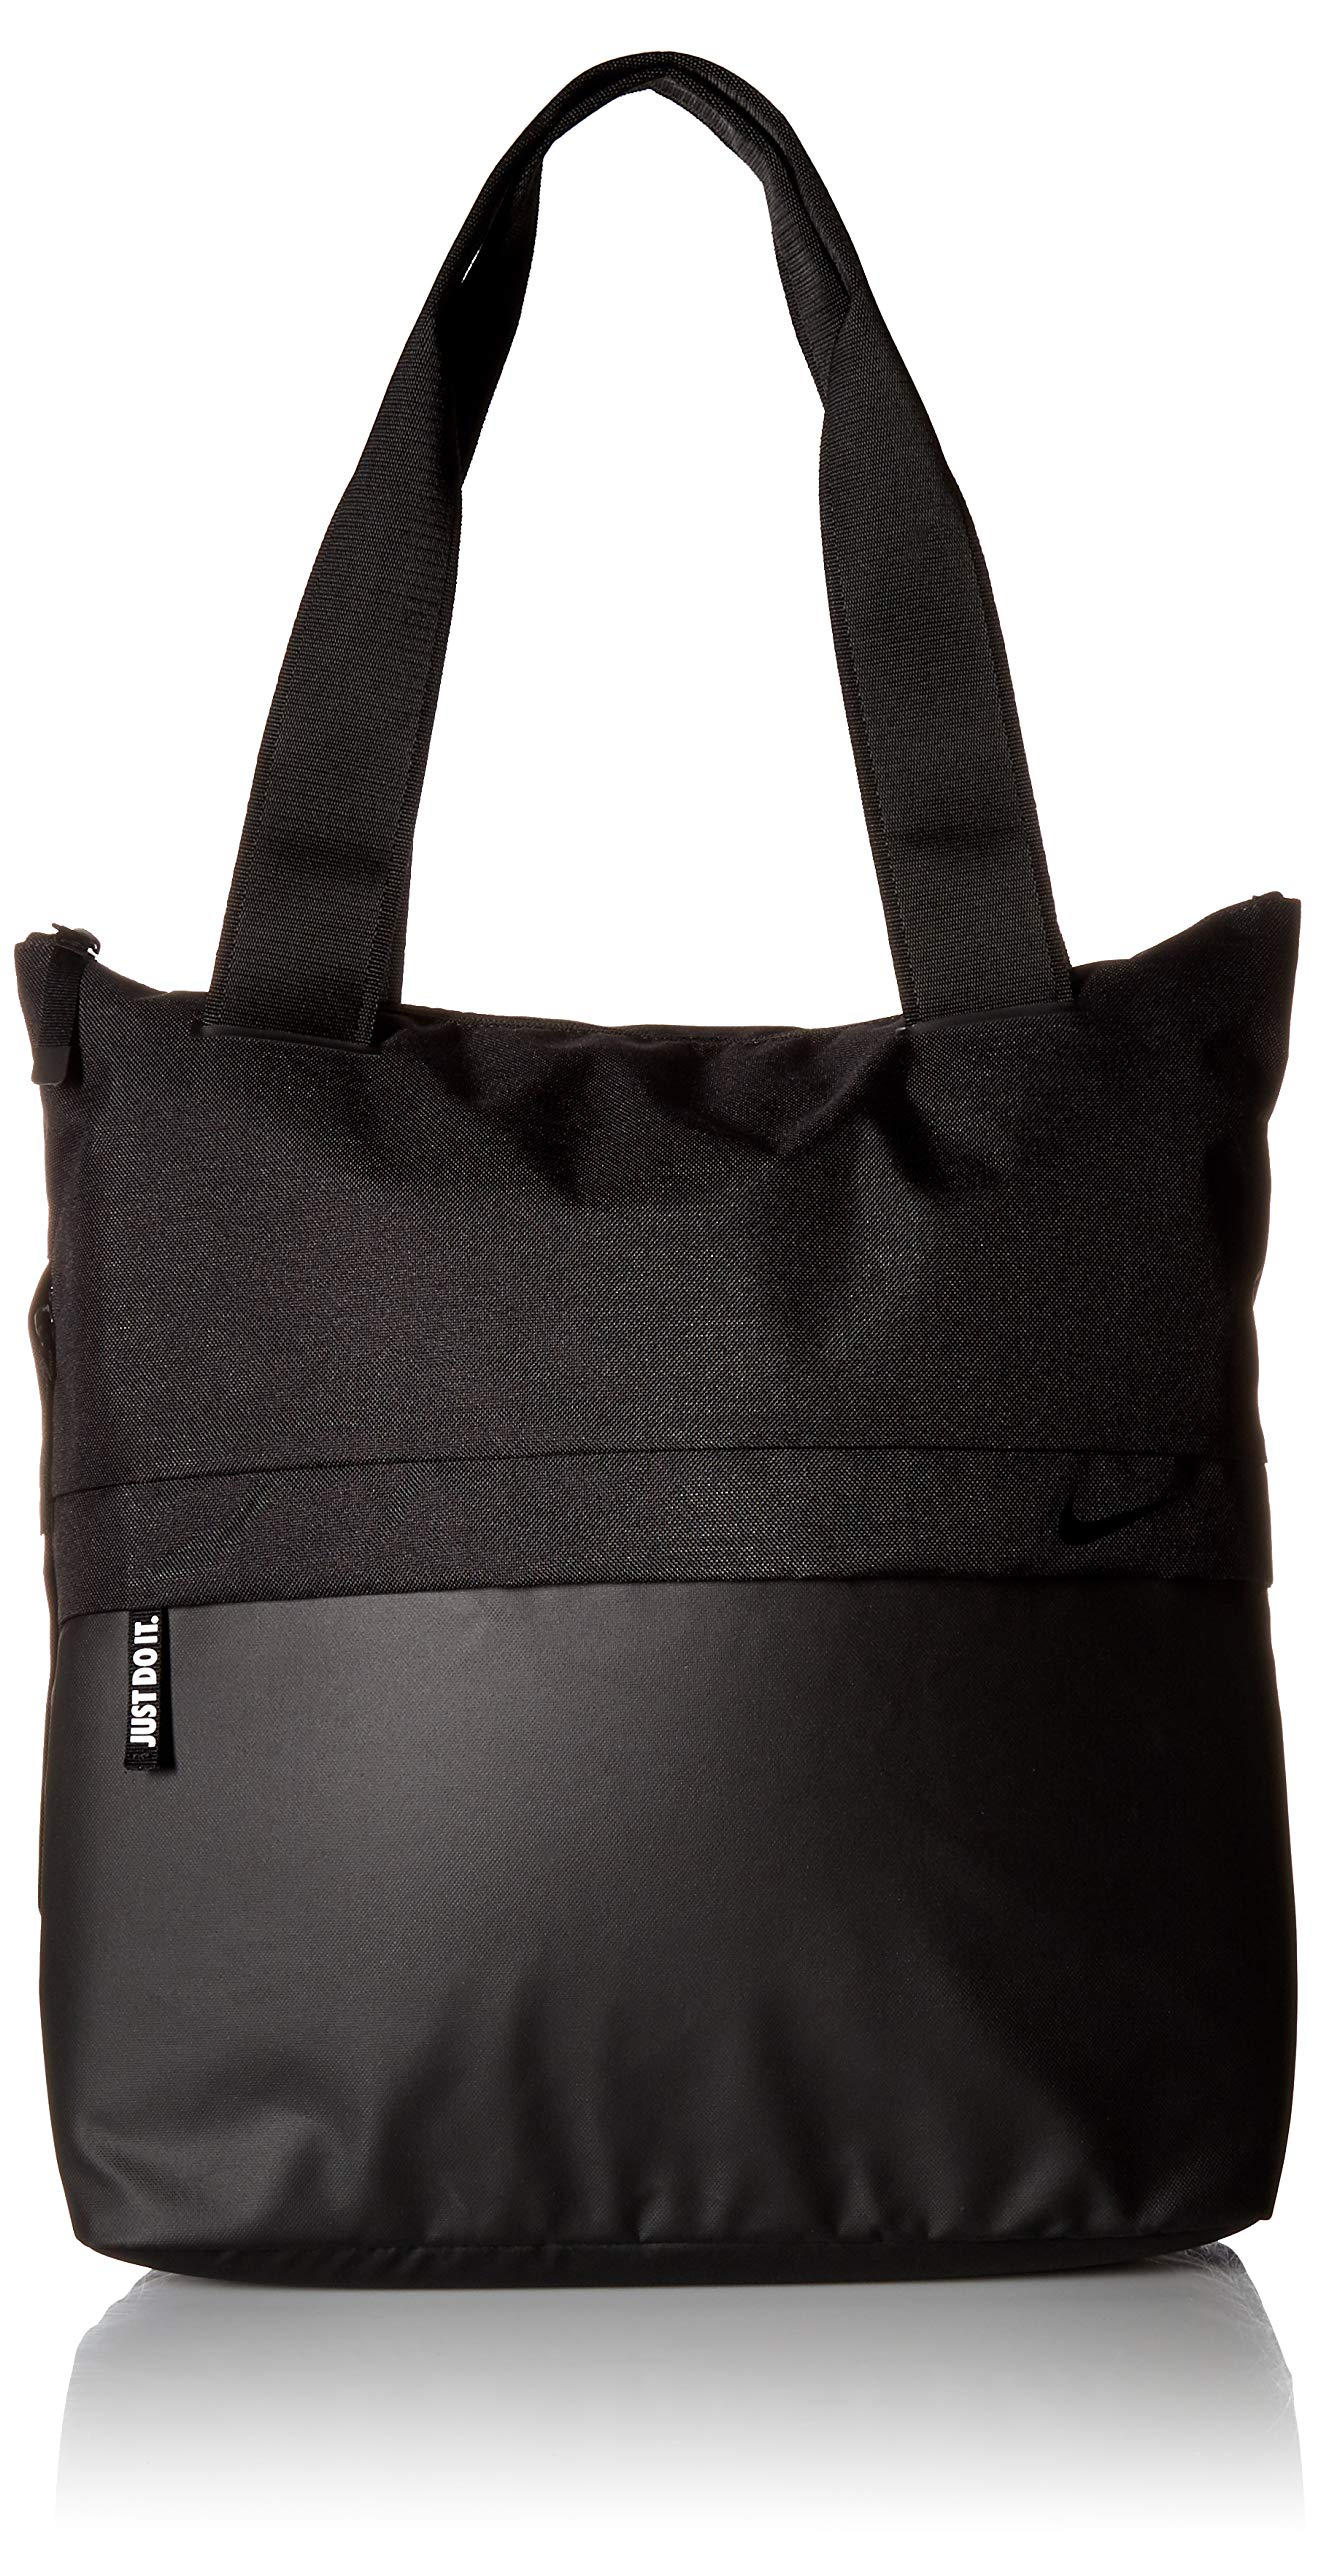 Nike Radiate Training Tote Bag Women's (One Size, Black)